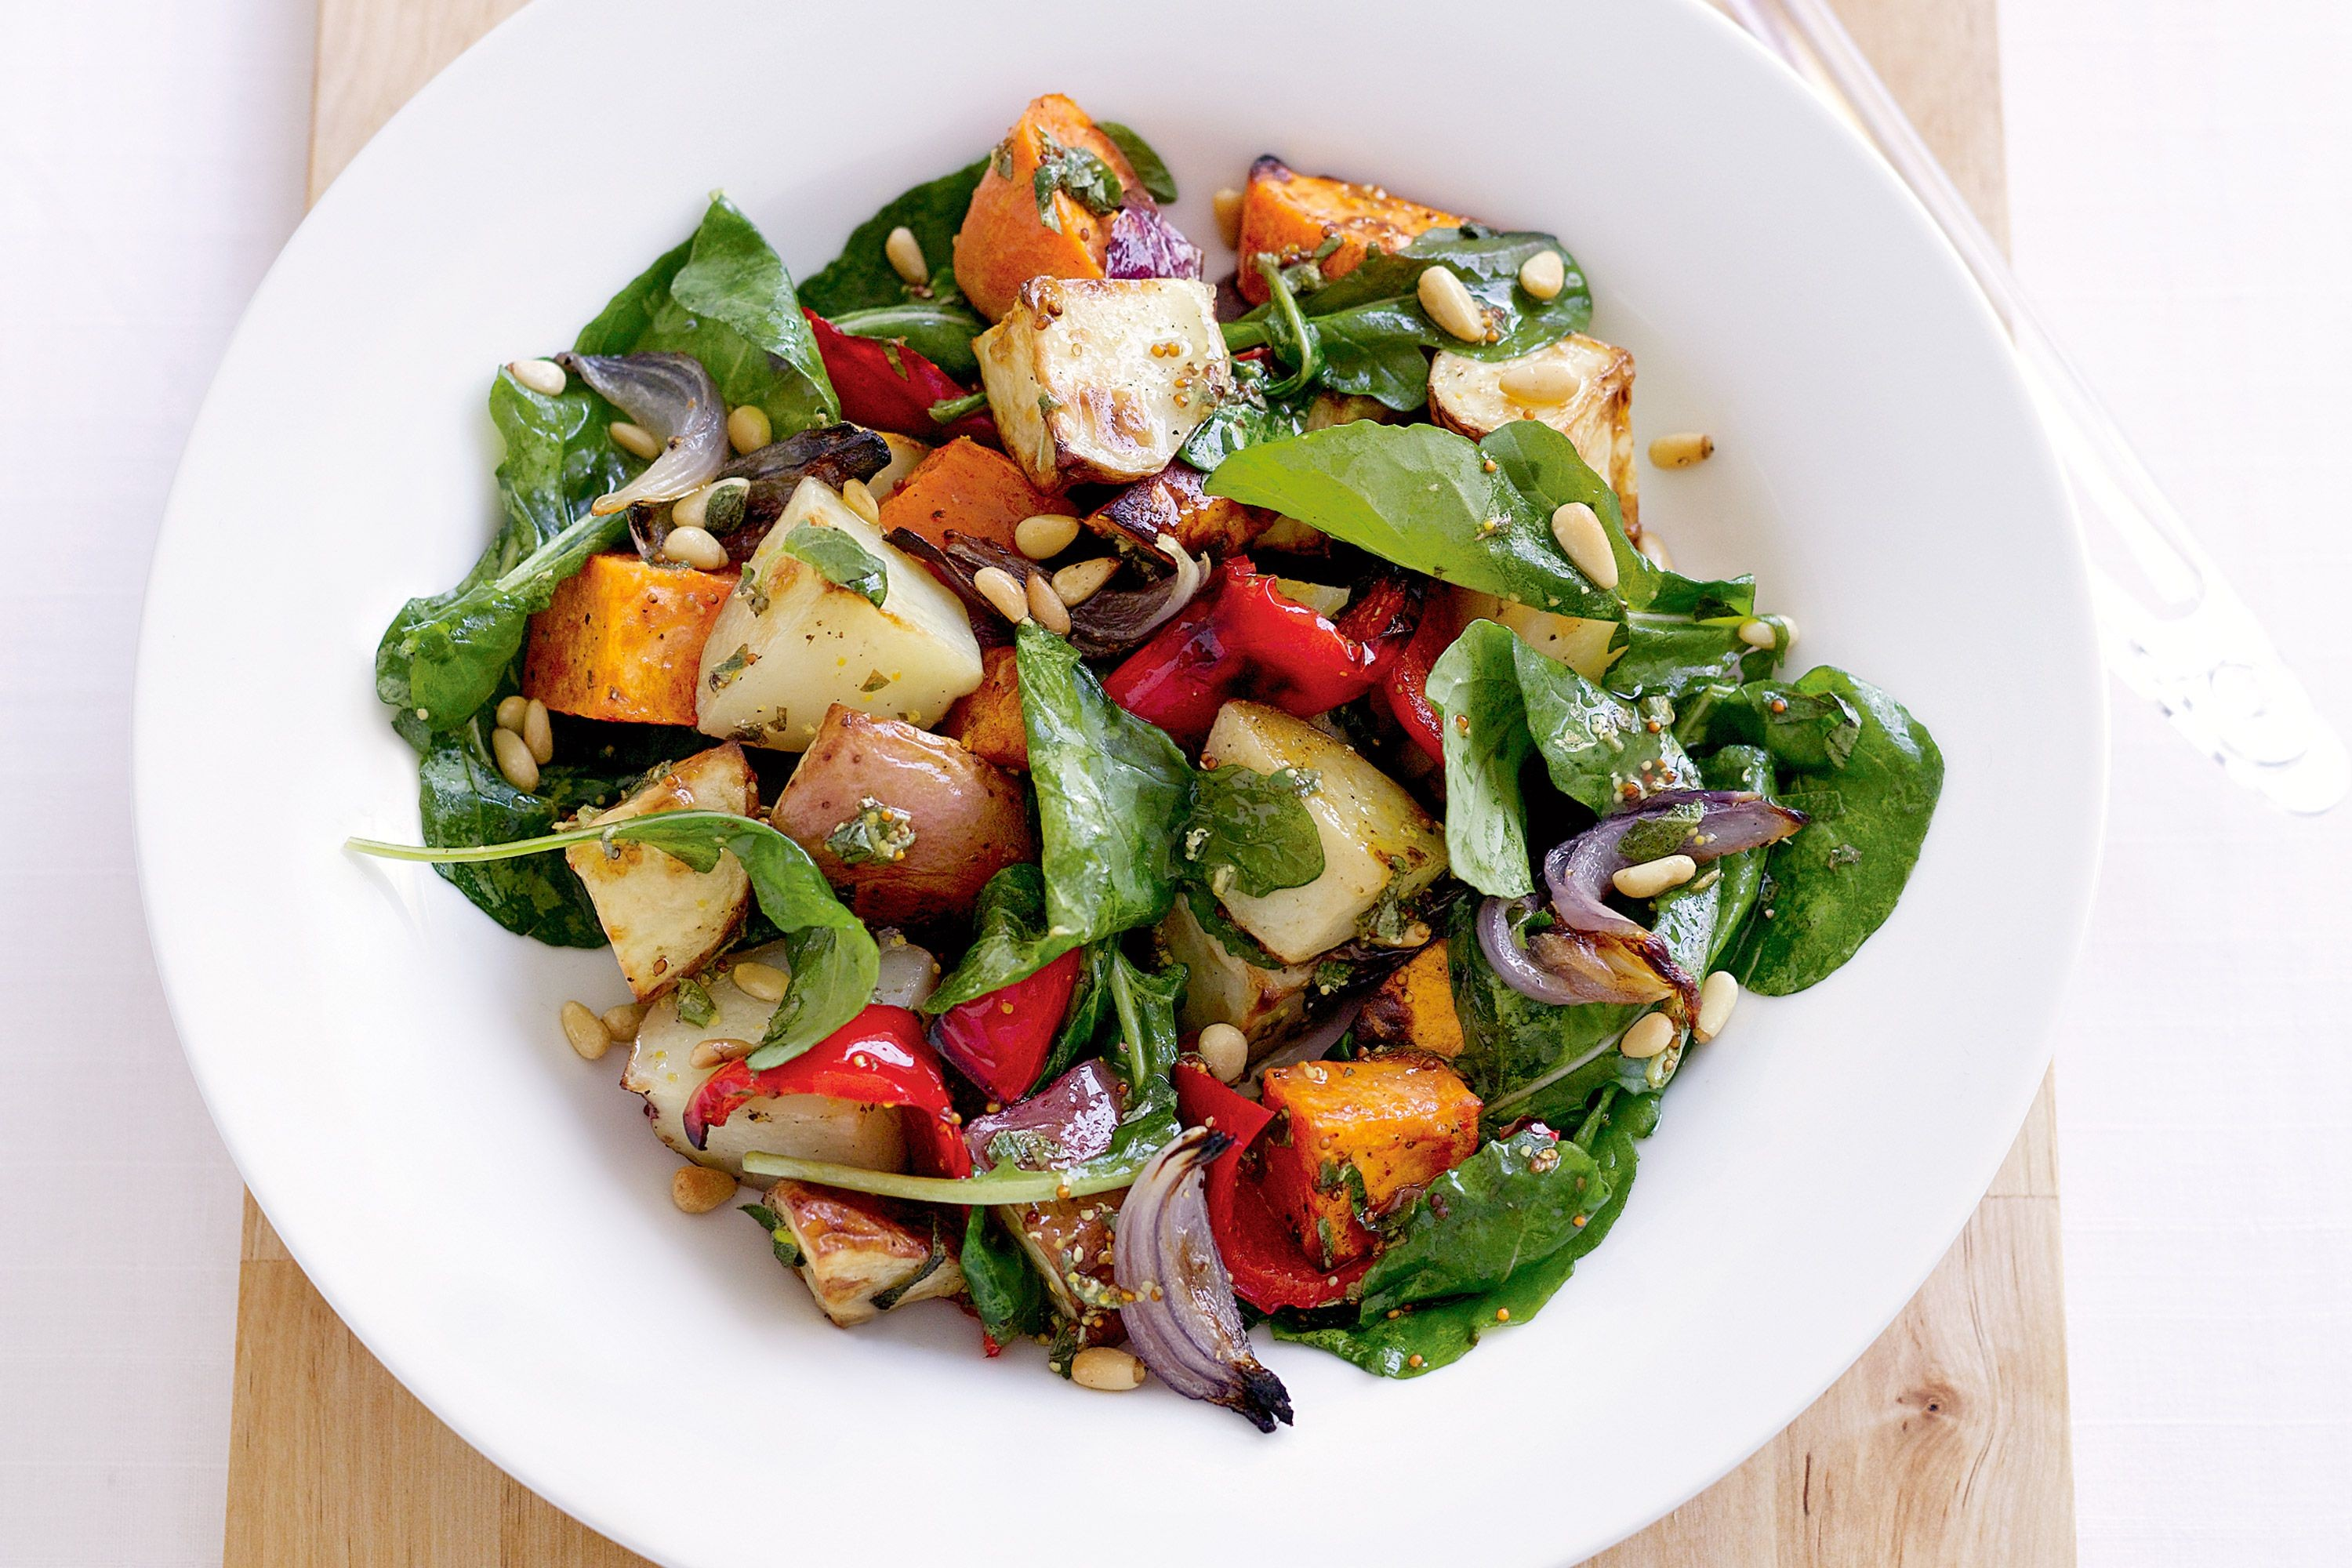 warm-roasted-vegetable-salad-32532-1